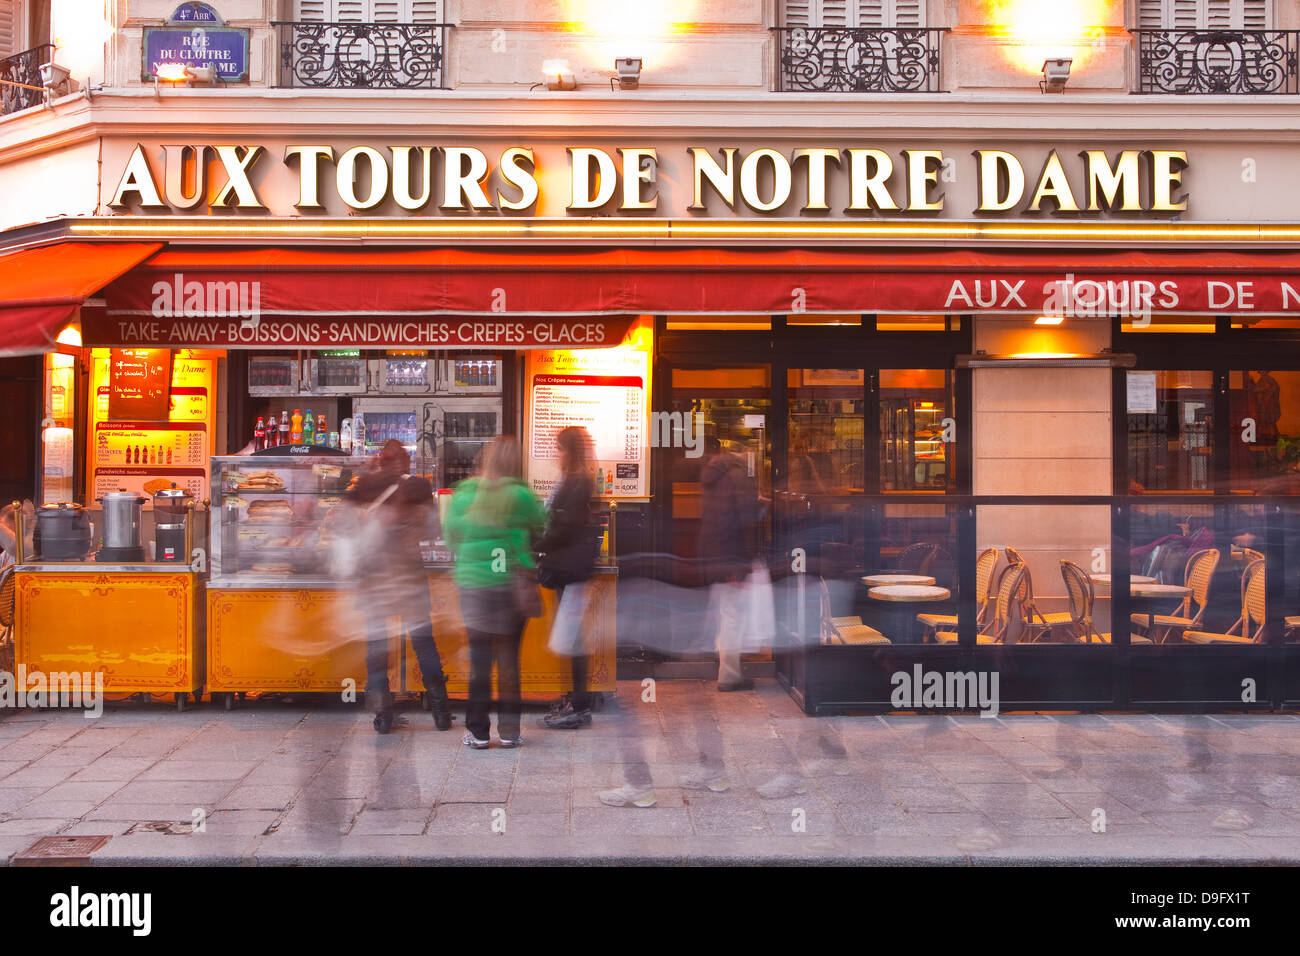 Tourists stand in line for a quick snack outside a restaurant in Paris, France - Stock Image